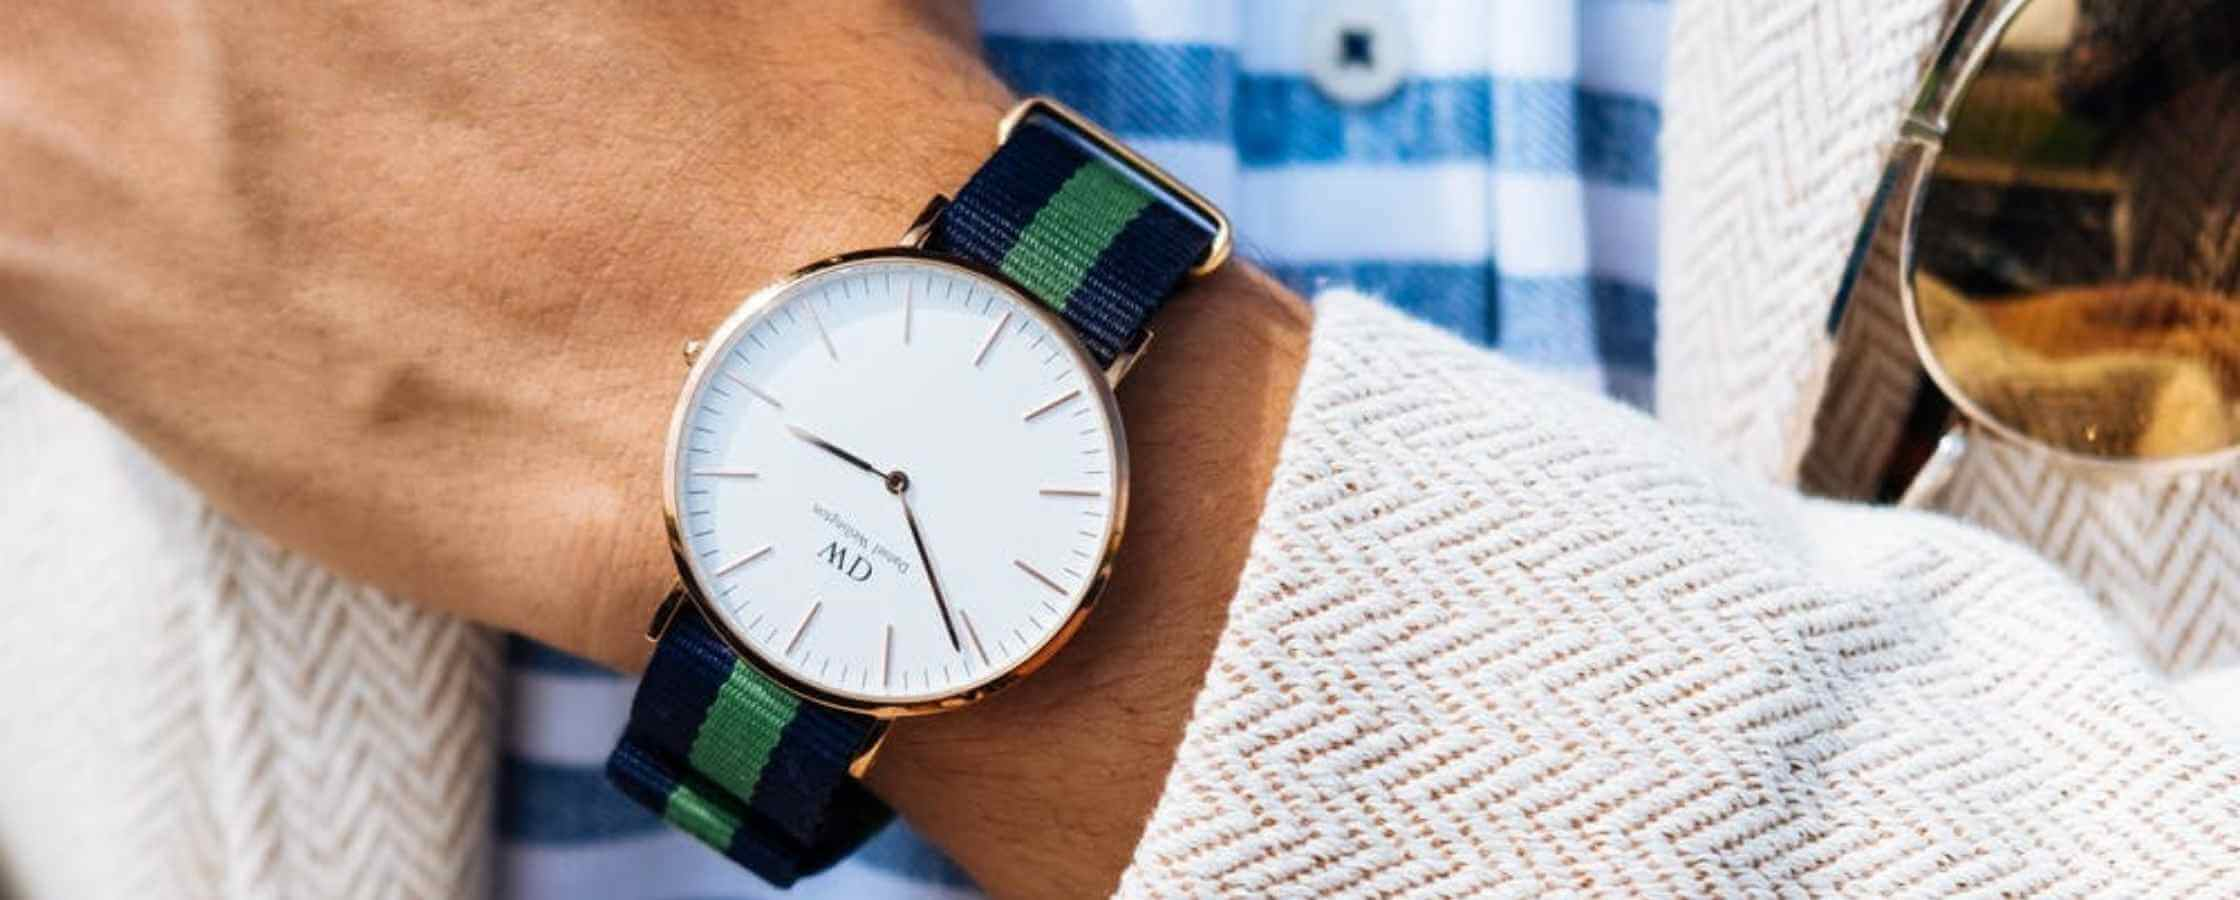 How to Wear a Watch Without Worry (Ultimate Guide for Men)